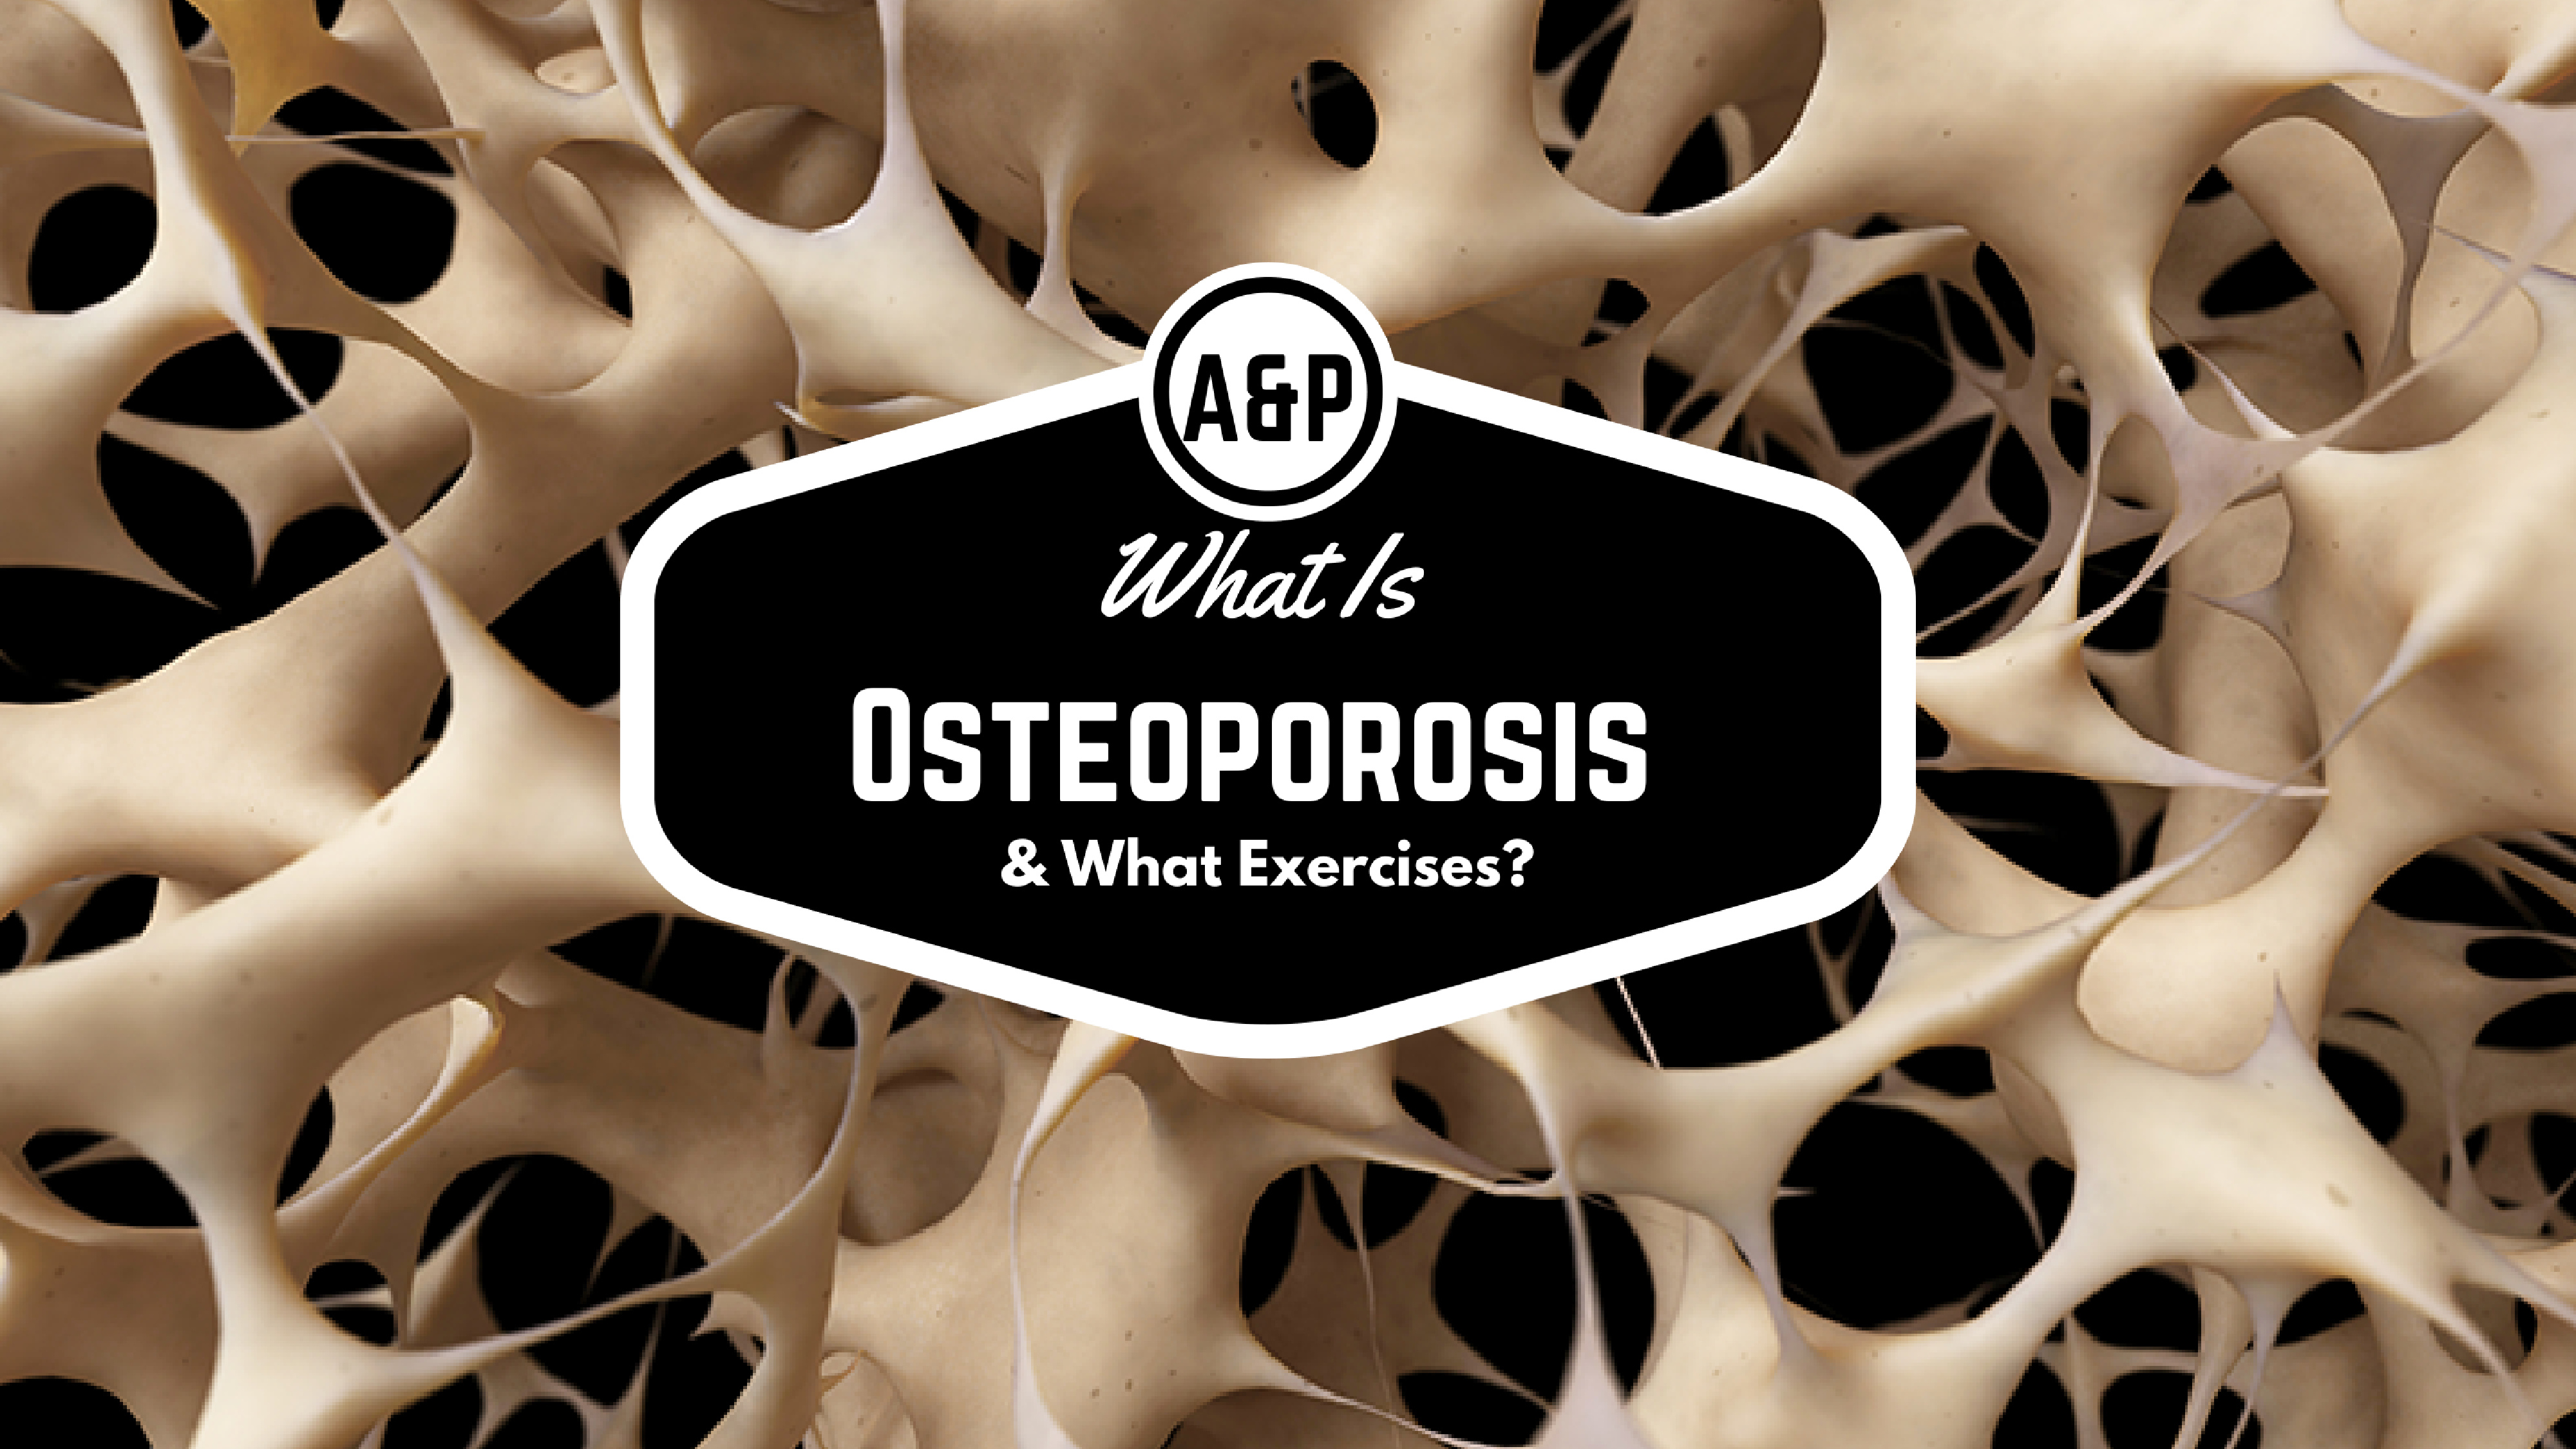 What is osteoporosis and what exercises are best?